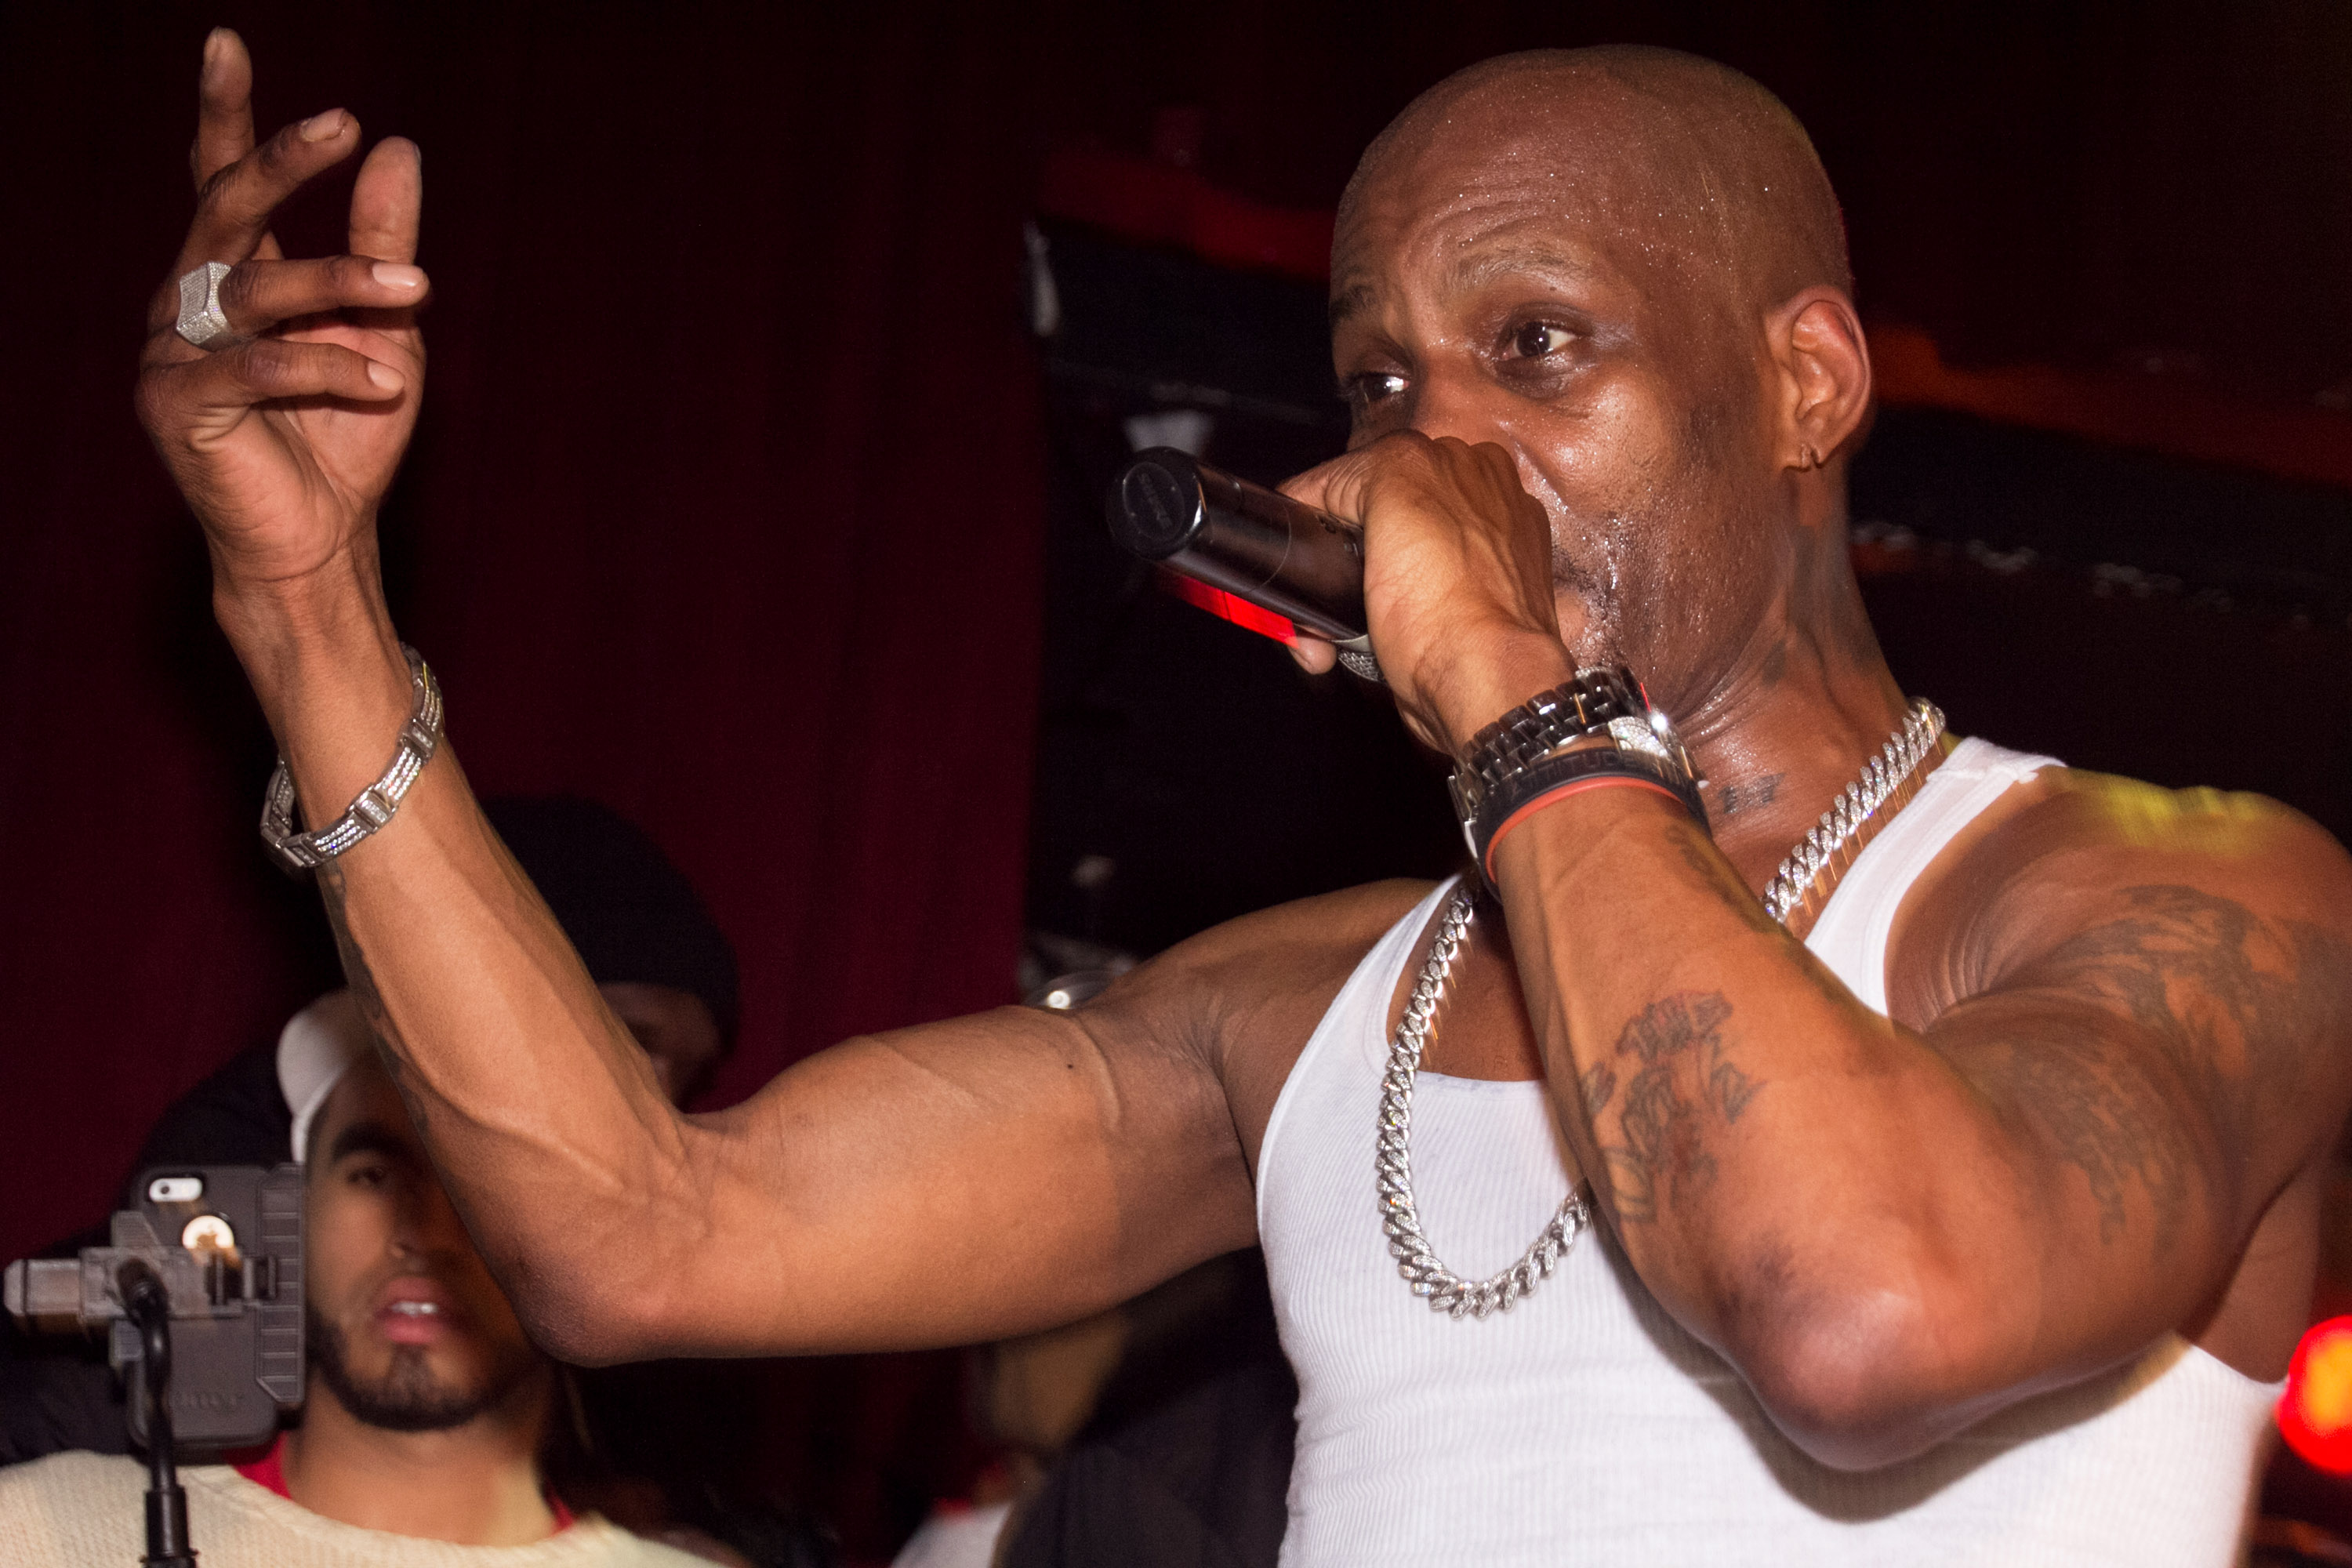 DMX In Concert - New York, NY